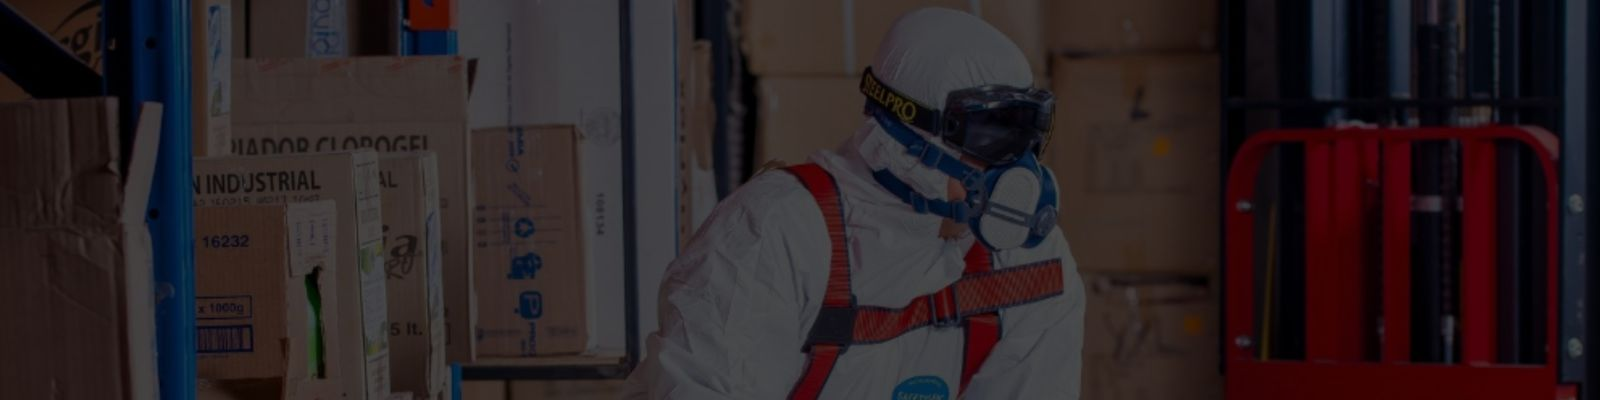 industrial cleaning pros in Johannesburg